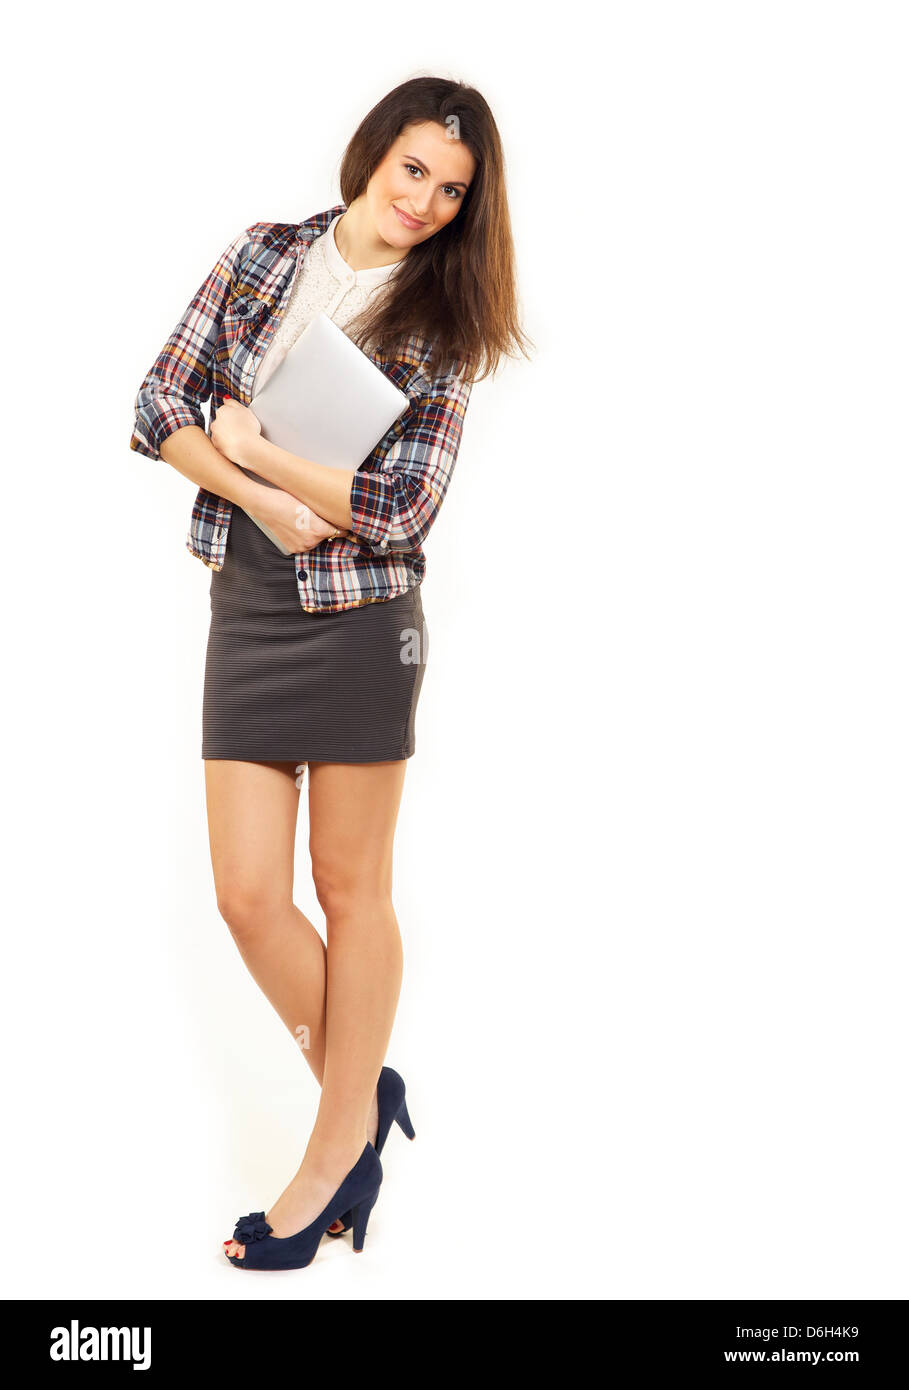 Stylish and confident student holding her laptop isolated against white background Stock Photo